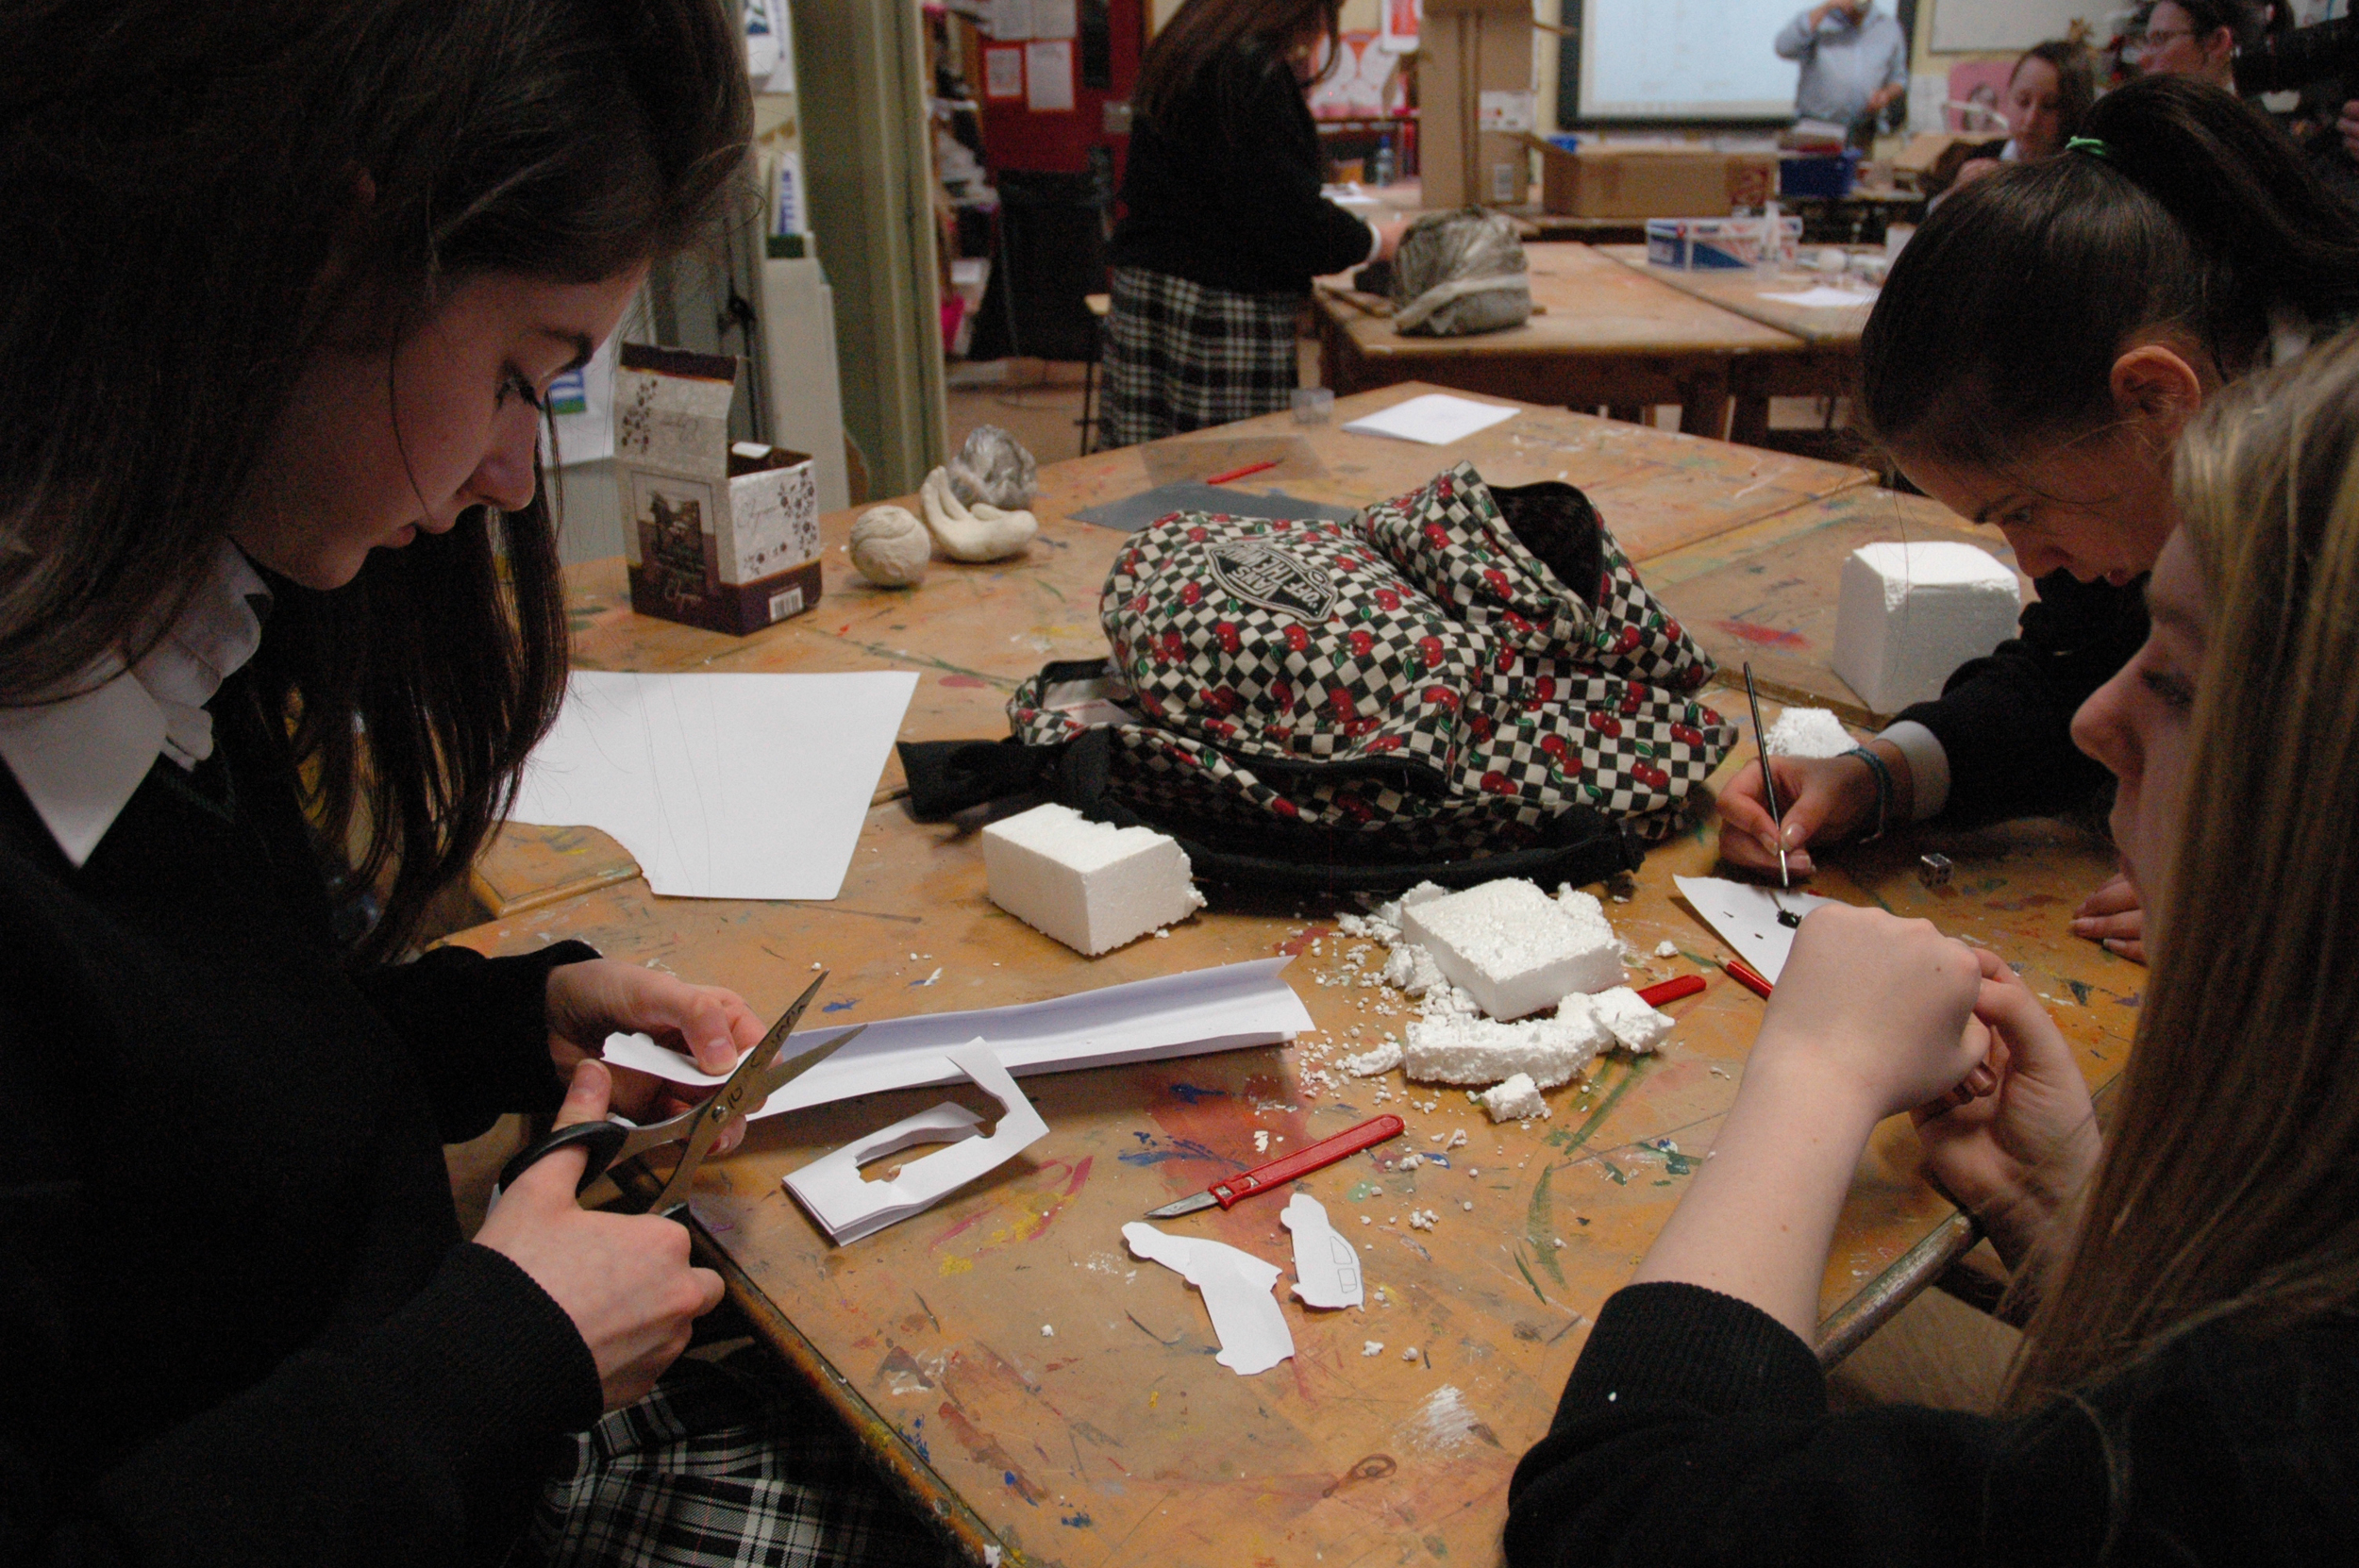 Students in early stages of creating an 'all-seeing eye' for a traffic roundabout.